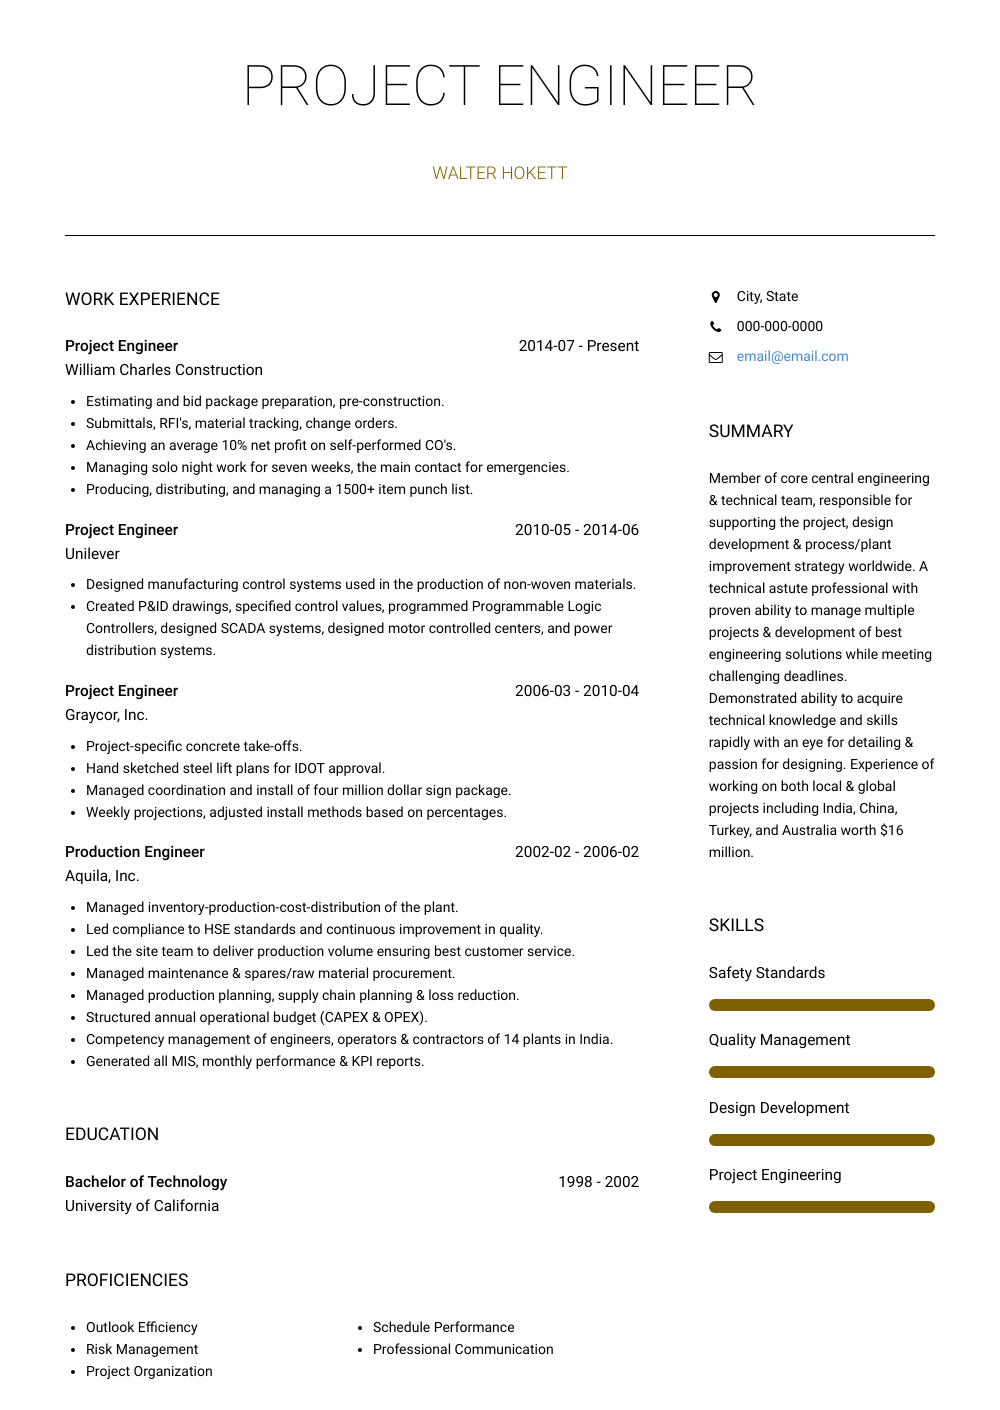 Project Engineer Resume Sample and Template